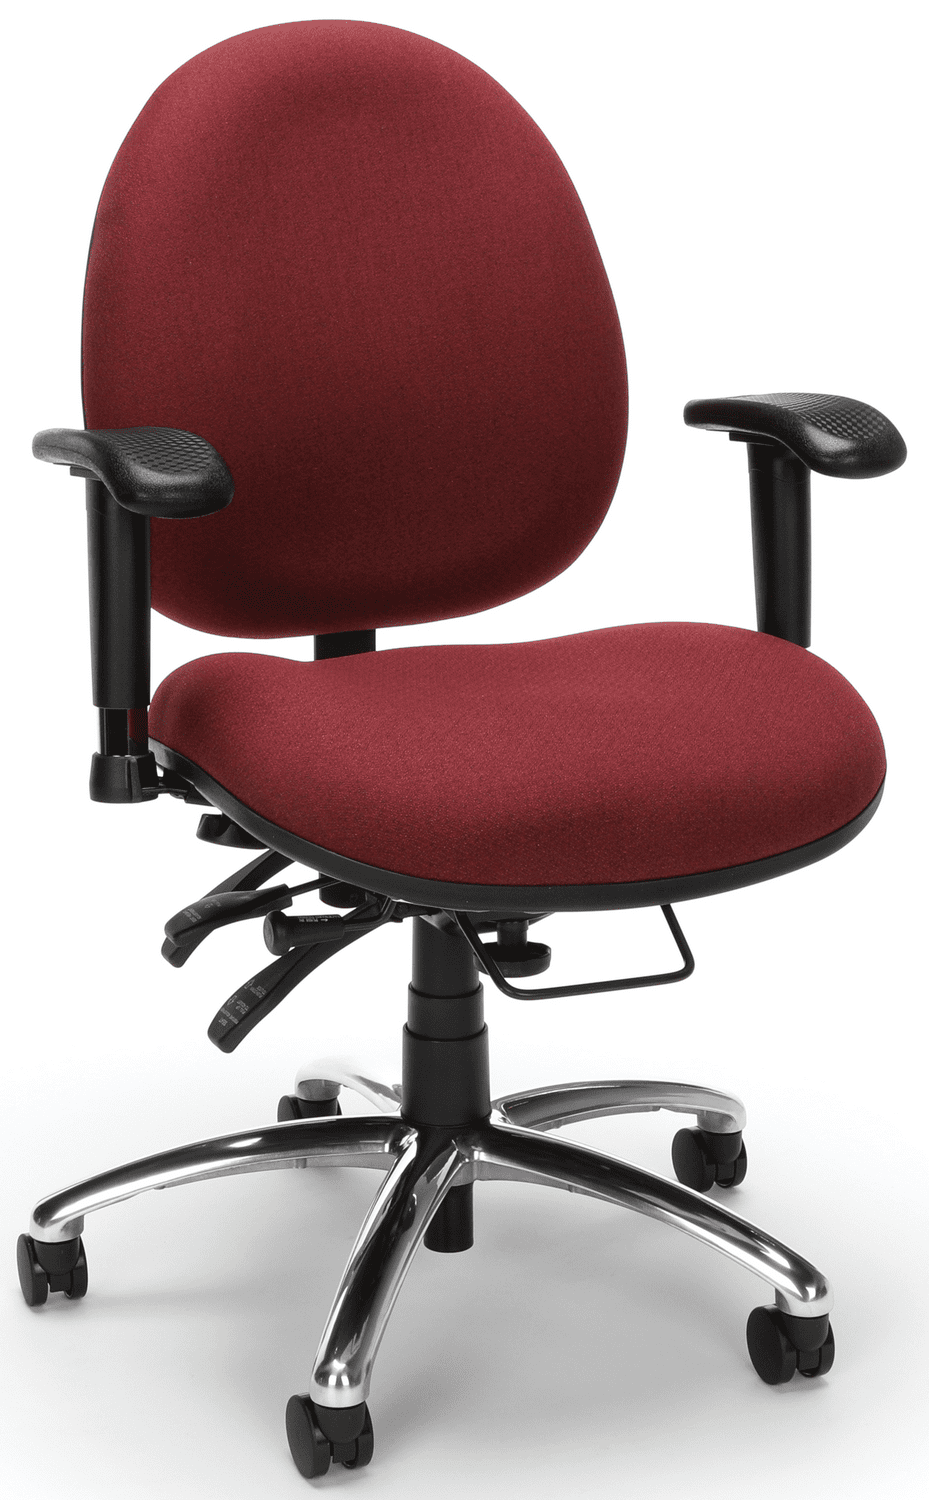 Super Office Chairs Unlimited Free Shipping Usd Ground Free Pdpeps Interior Chair Design Pdpepsorg